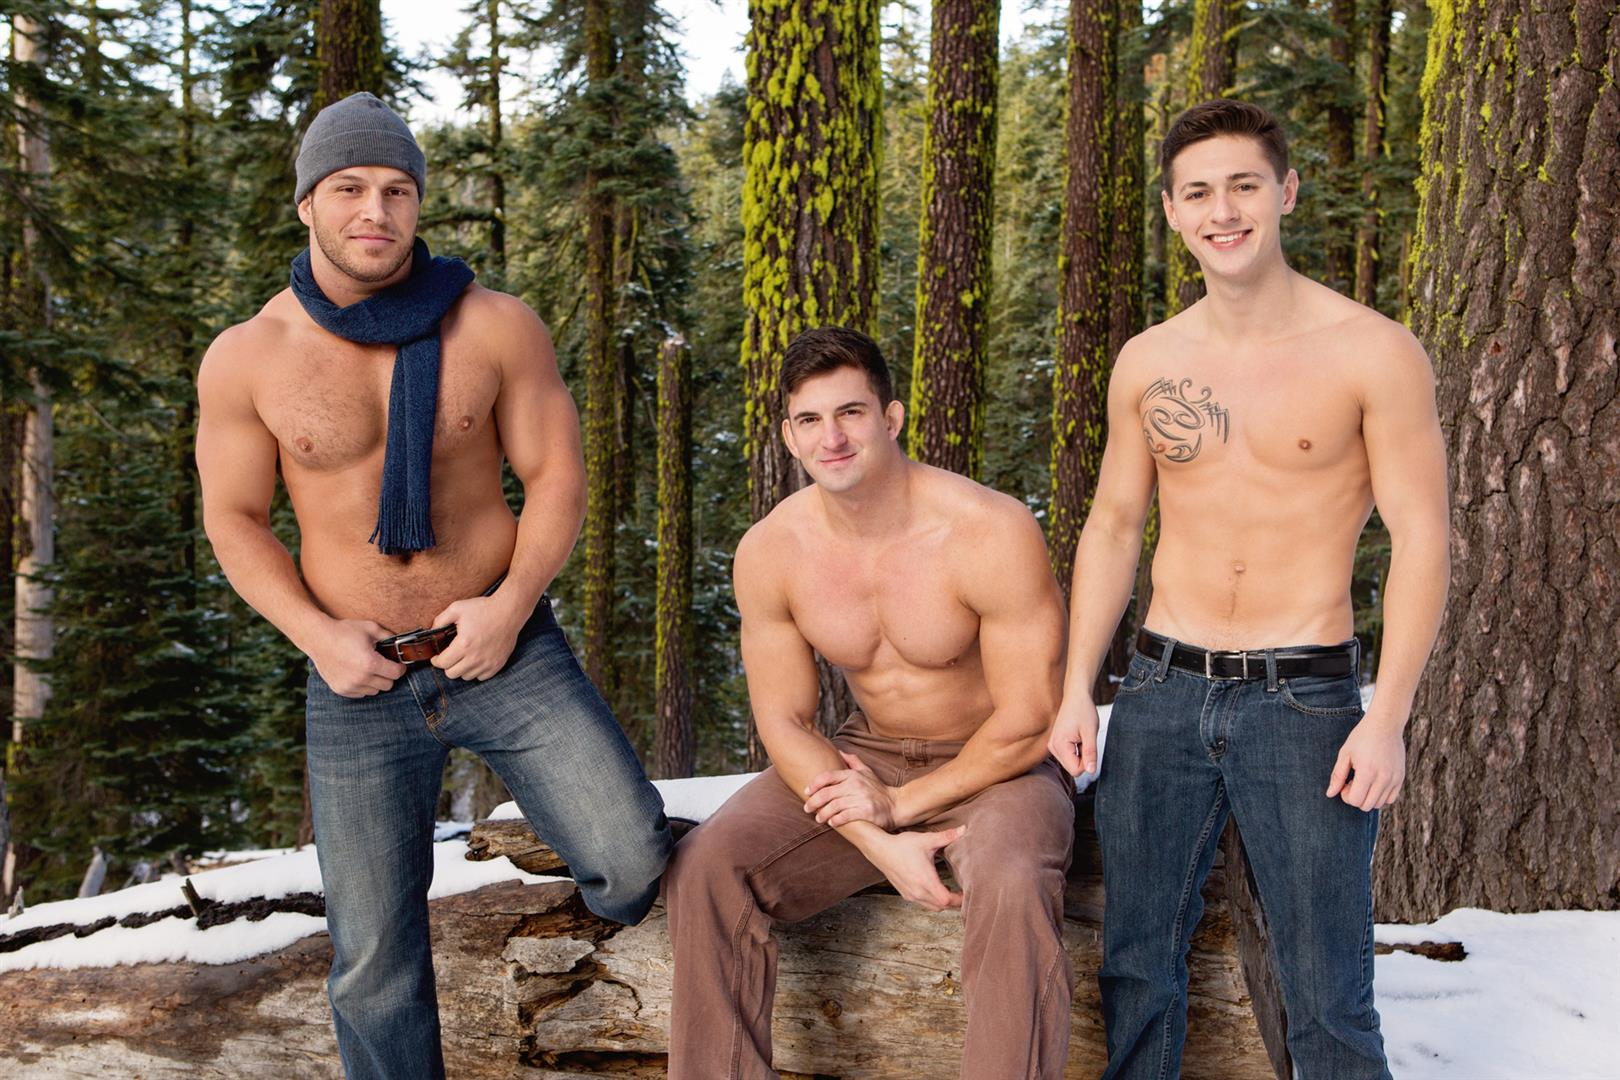 Sean-Cody-Winter-Getaway-Day-2-Big-Dick-Hunks-Fucking-Bareback-Amateur-Gay-Porn-10 Sean Cody Takes The Boys On A 8-Day Bareback Winter Getaway